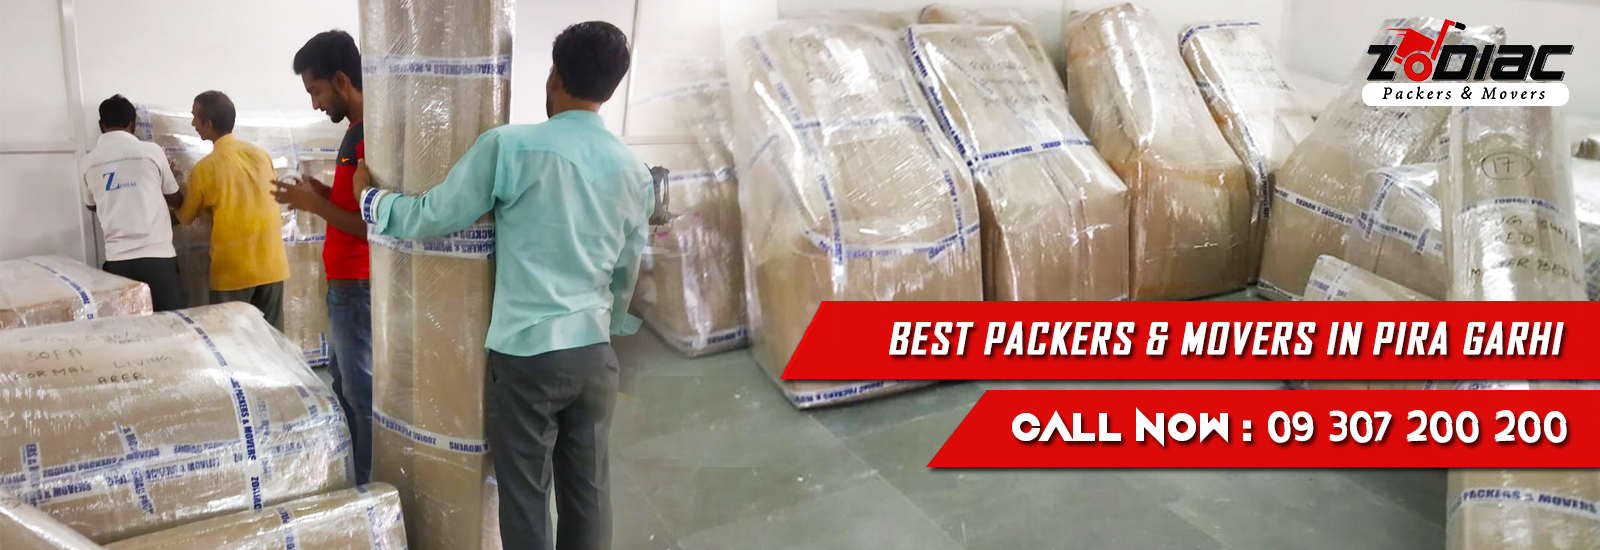 Packers and Movers in Pira Garhi